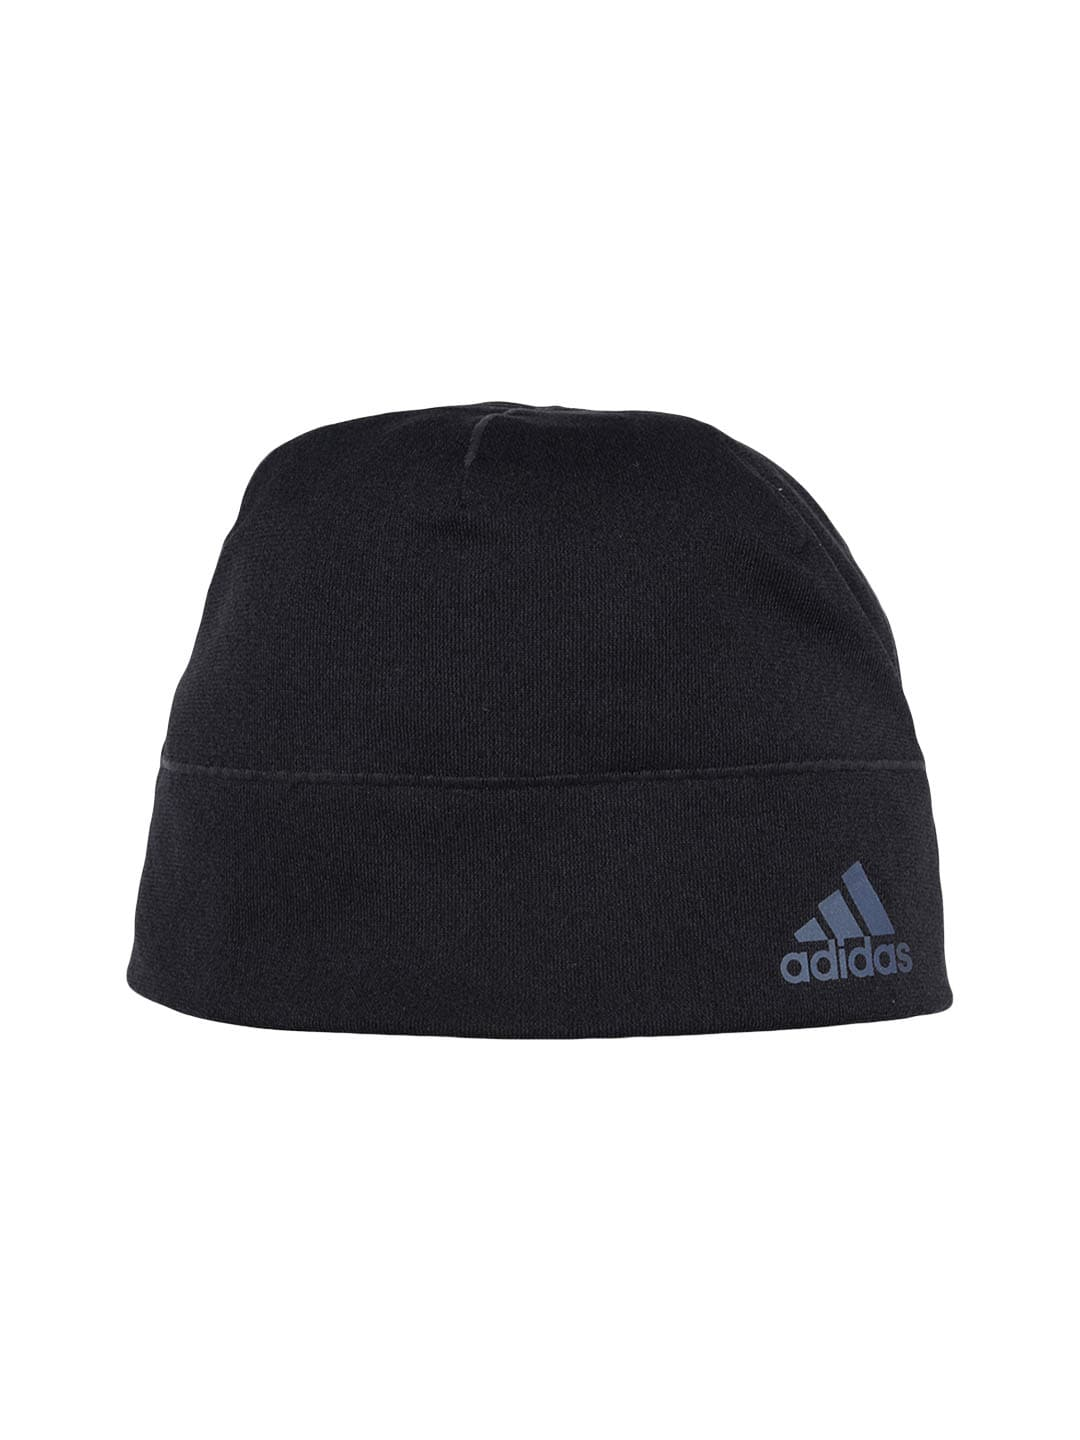 c35722cd58d Real Madrid Adidas Caps - Buy Real Madrid Adidas Caps online in India